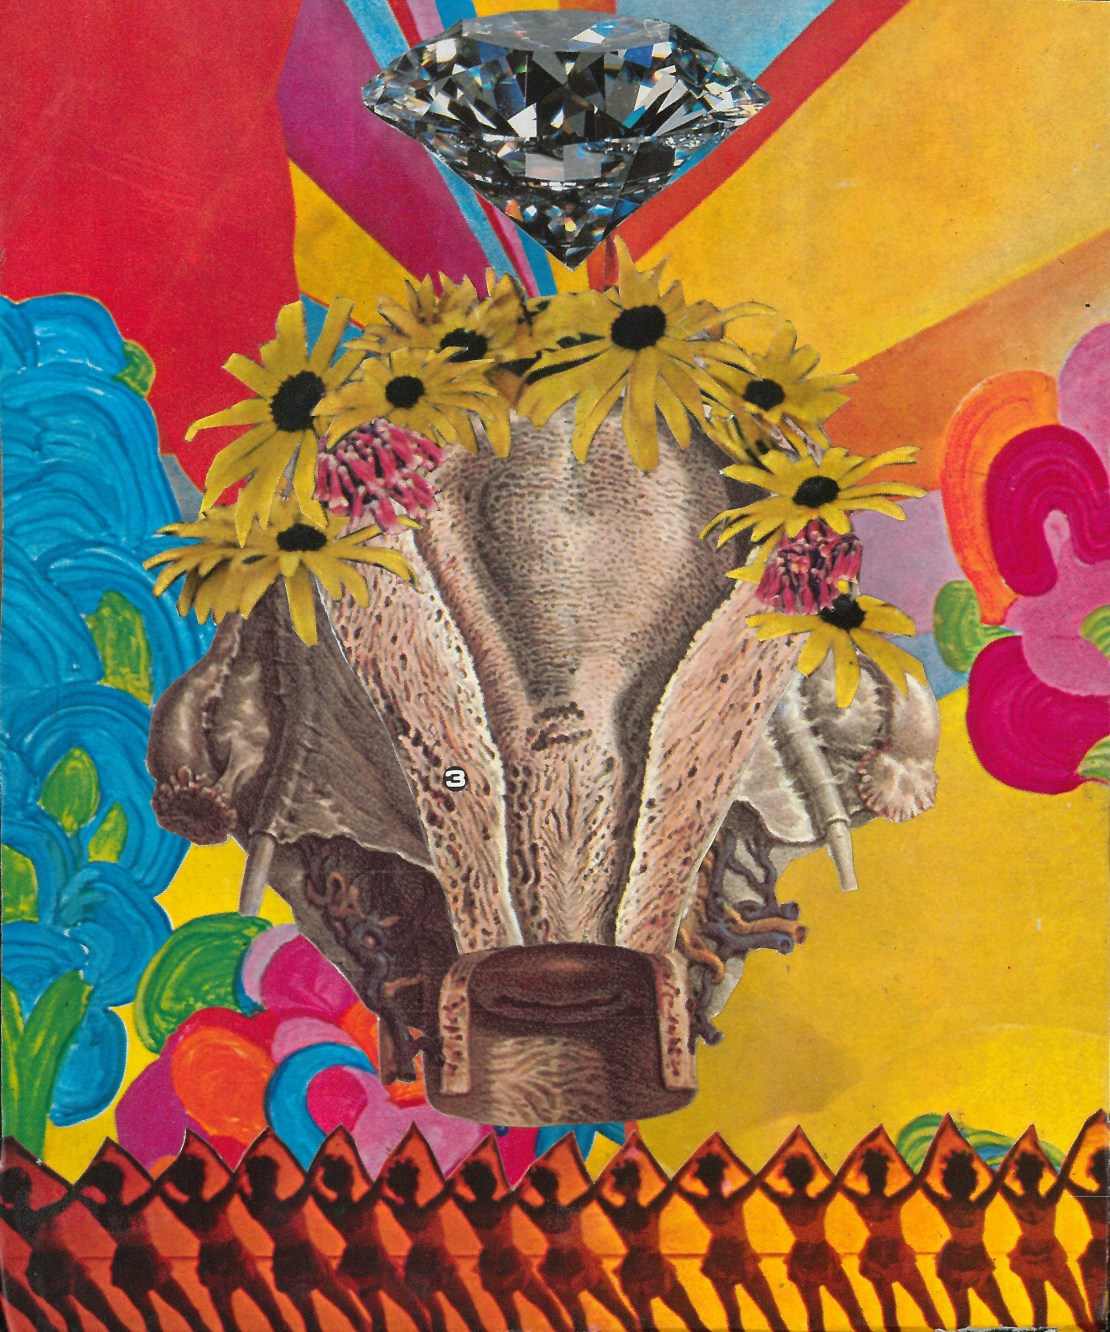 colorful collage artwork featuring flowers, a diamond, and female dancers